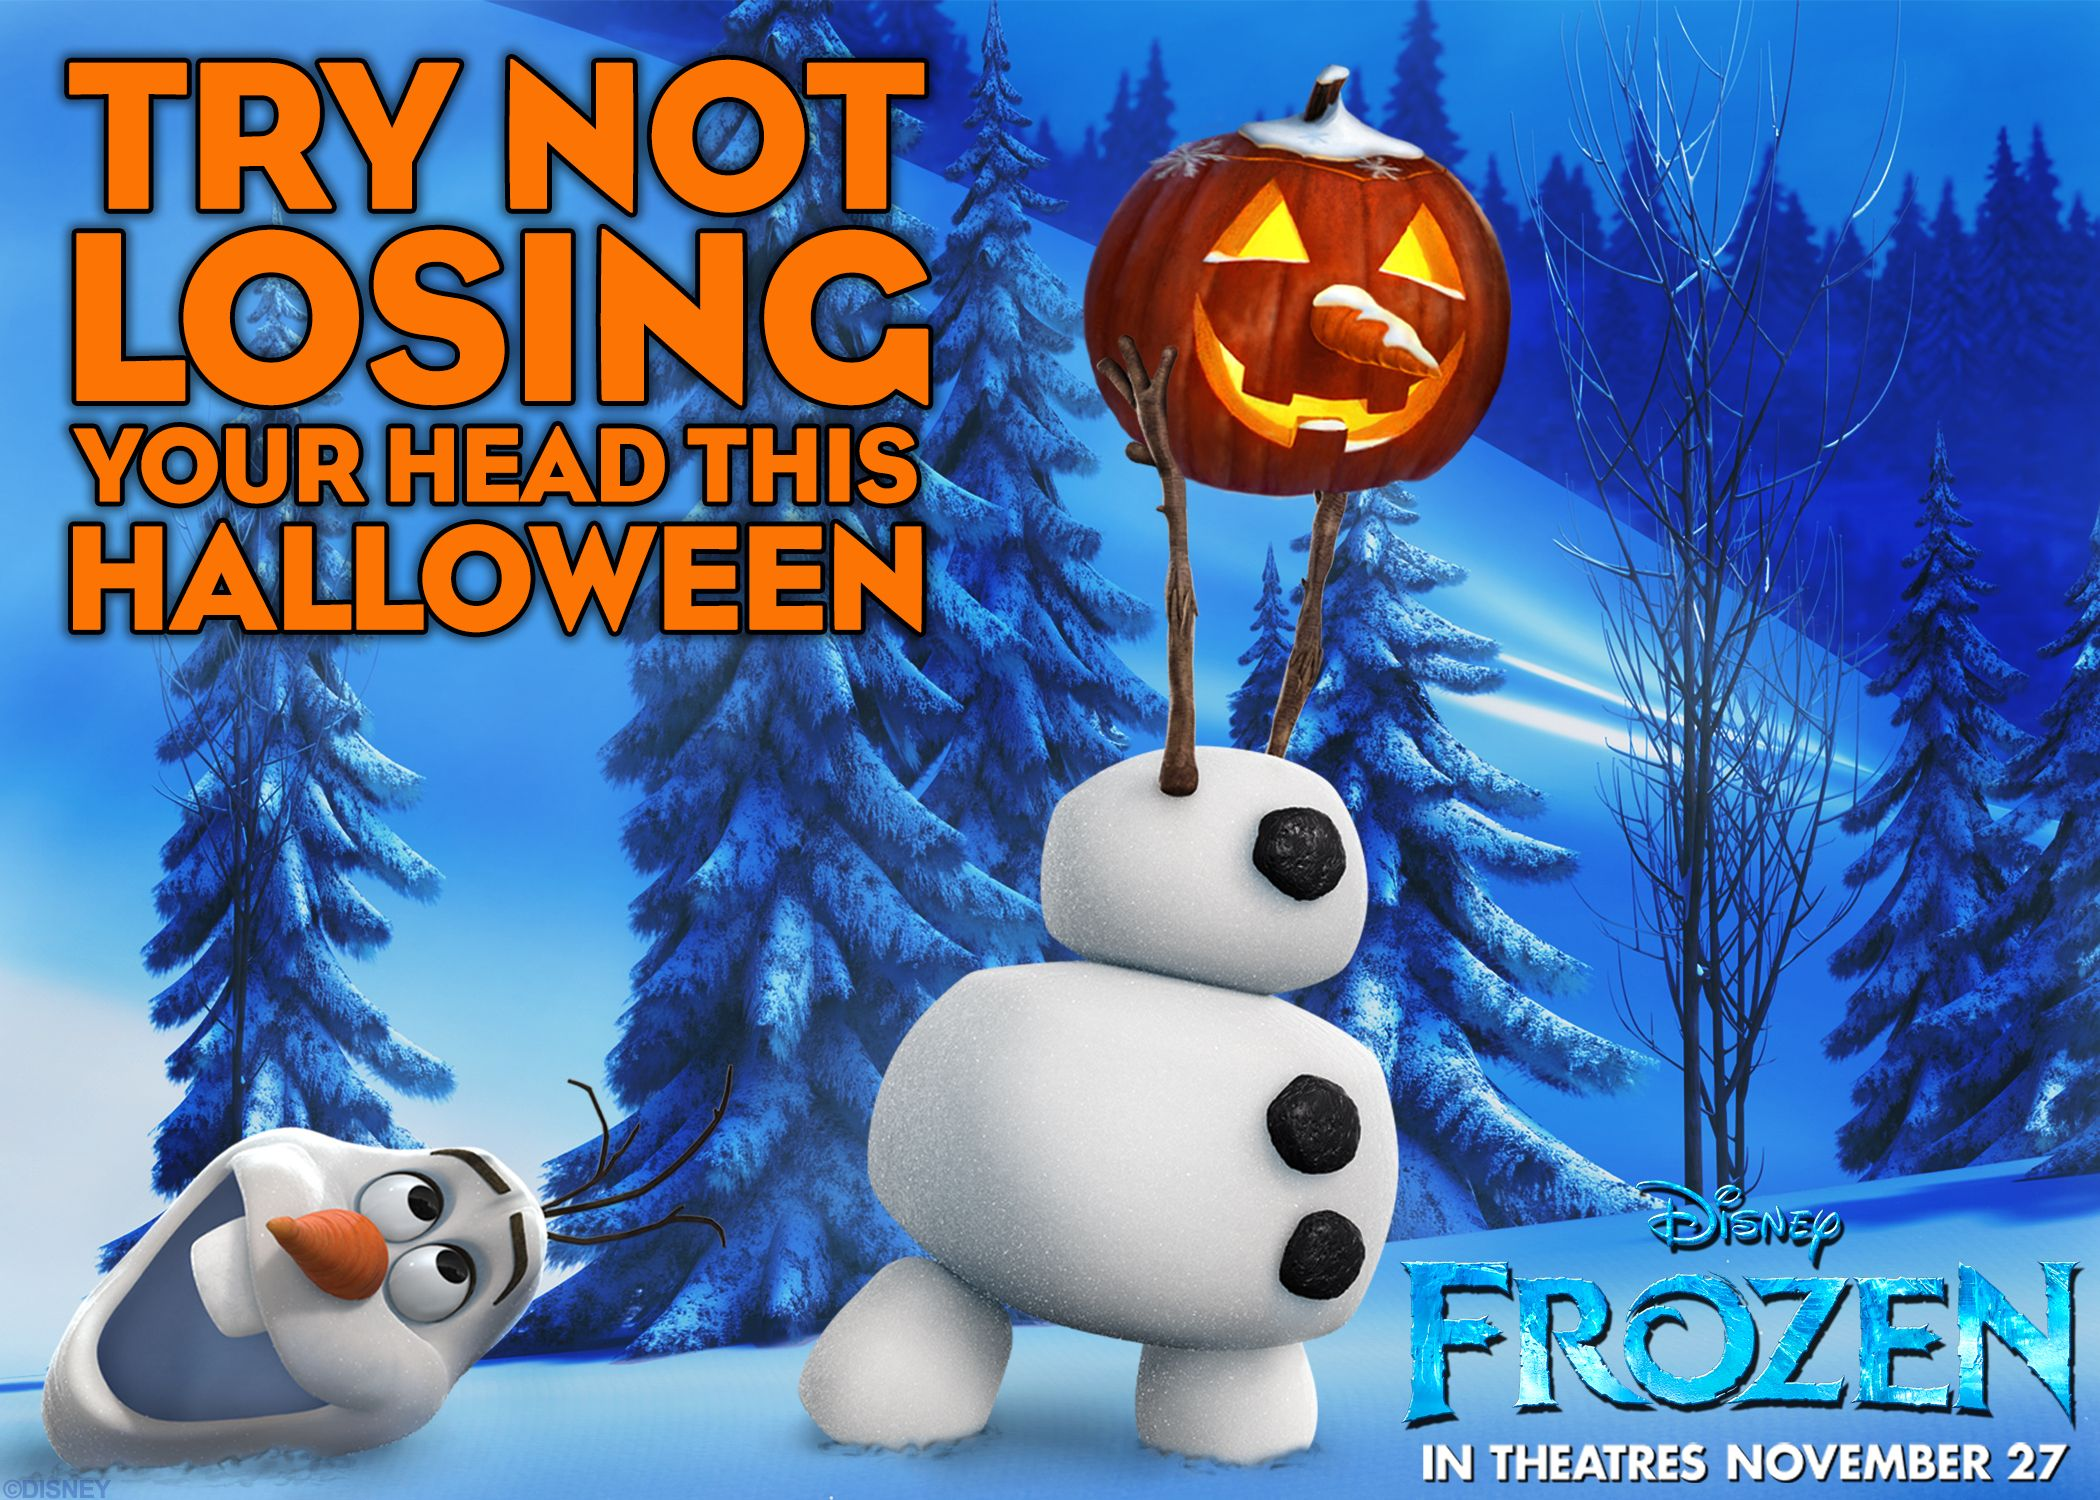 Happy Halloween from Disney's Frozen! Frozen Pinterest